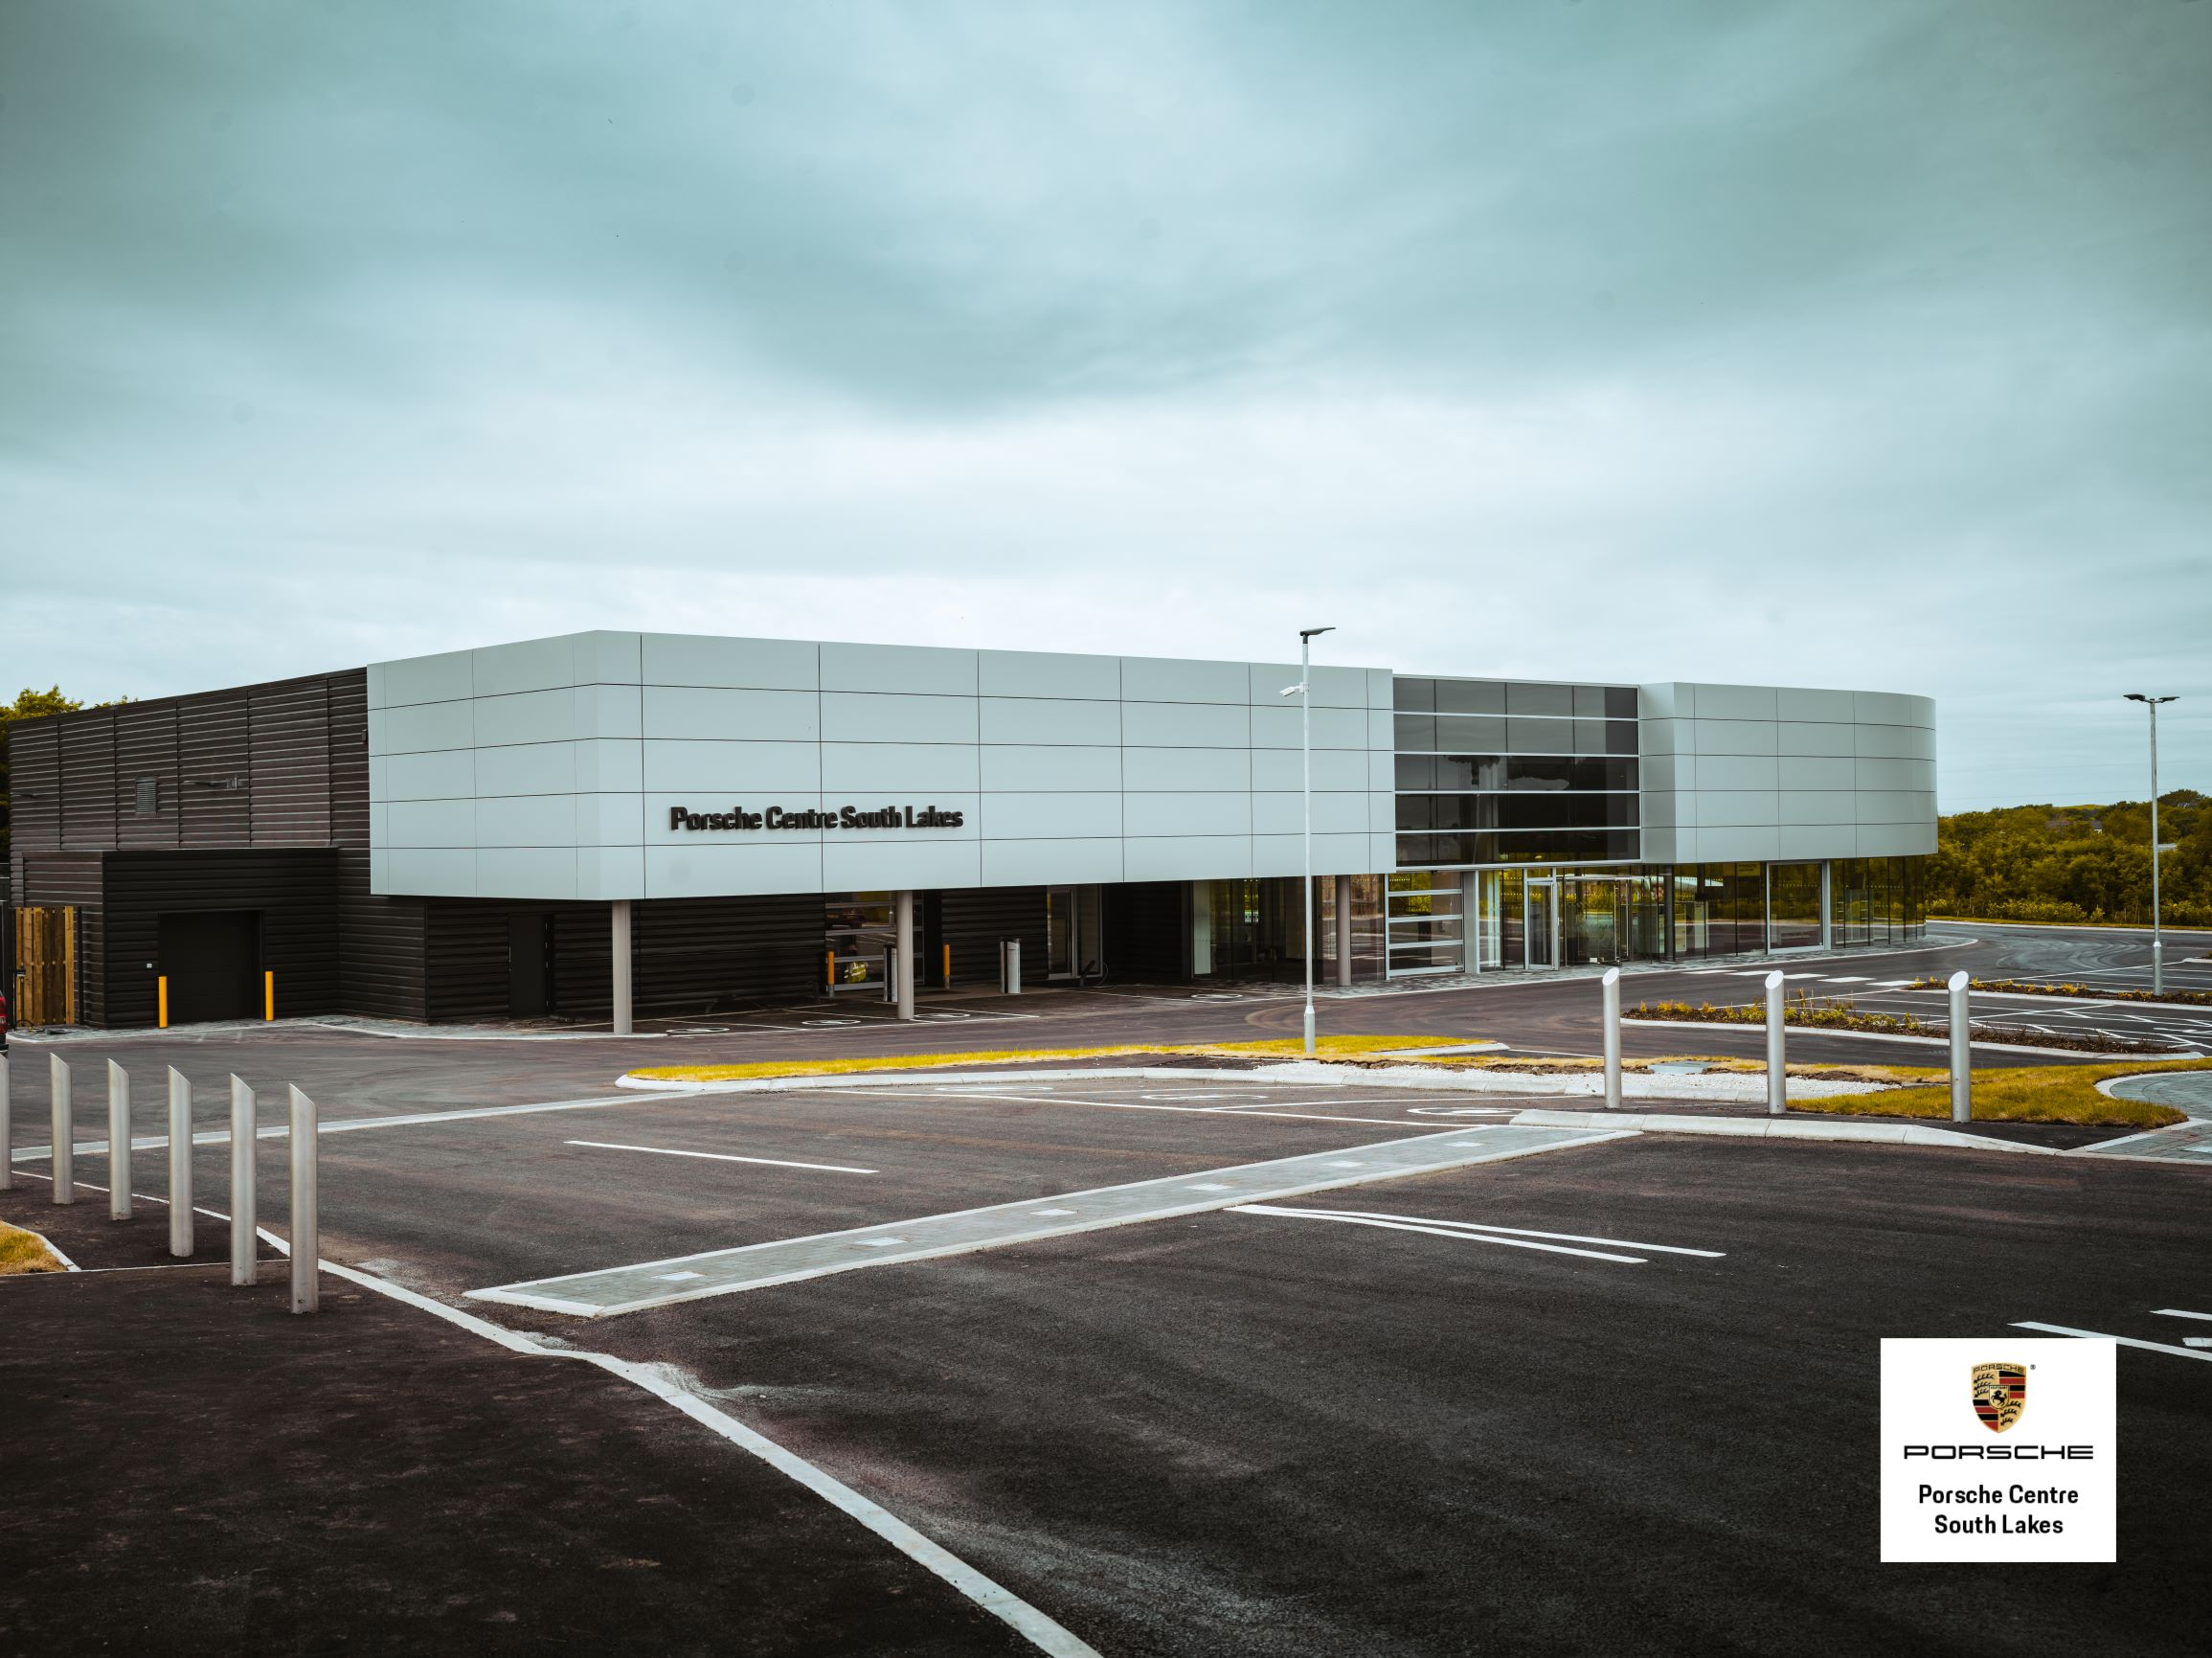 CADDICK REVS UP AND COMPLETES ON £5M PORSCHE CENTRE NEAR CARNFORTH